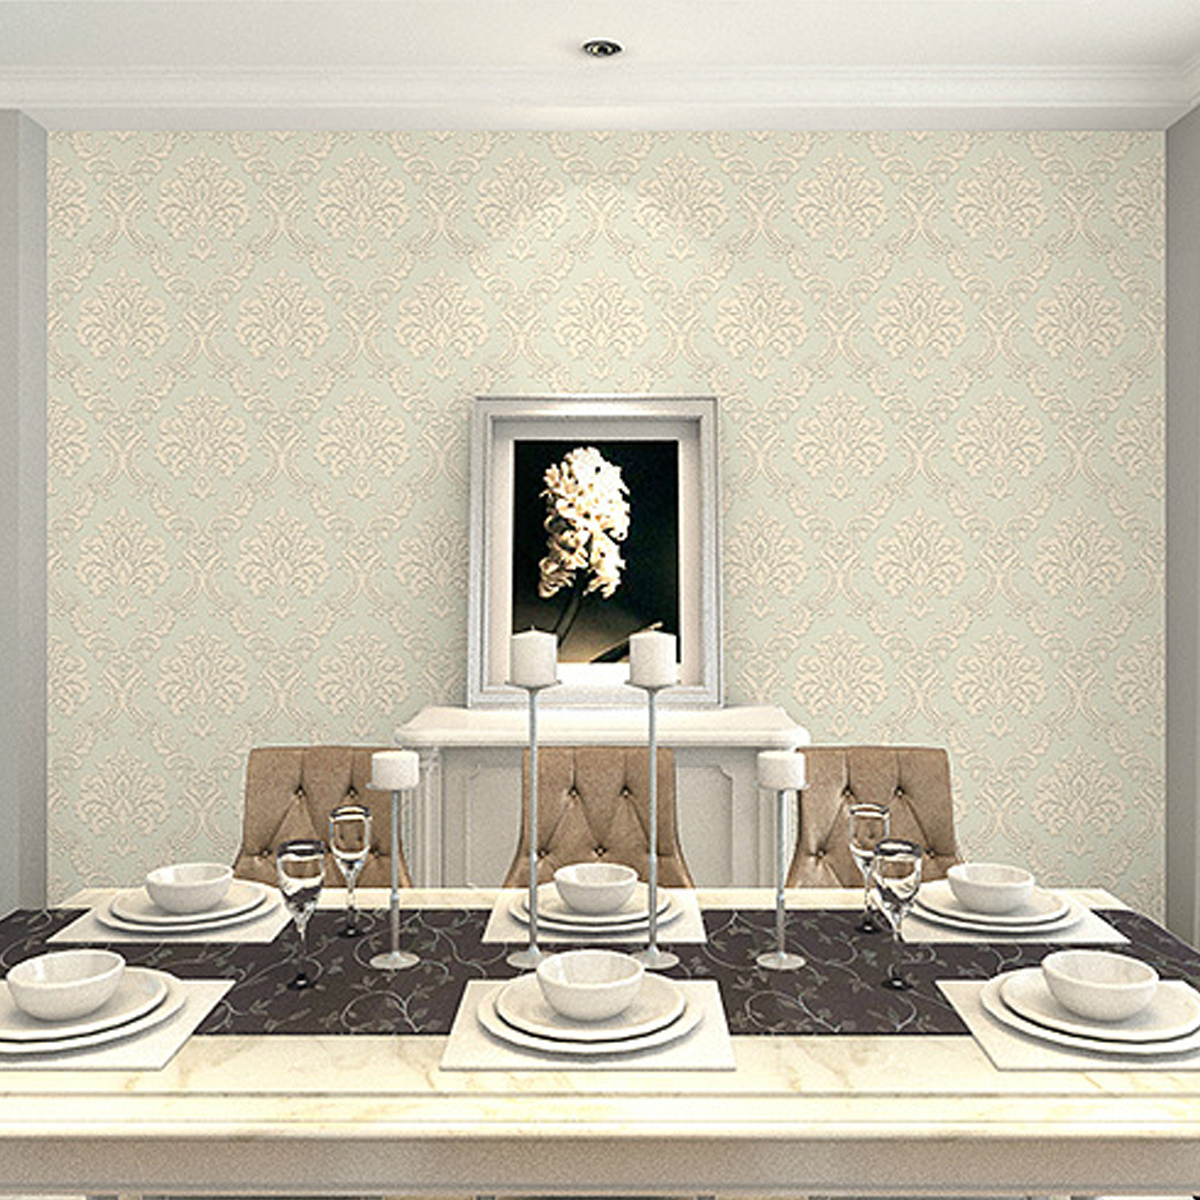 3D 10*0.53M Vintage Non-woven Paper Sticker Wallpaper Rolls Wall coverings Milky White Yellow Textured Wall Home Dining Room Office Decor